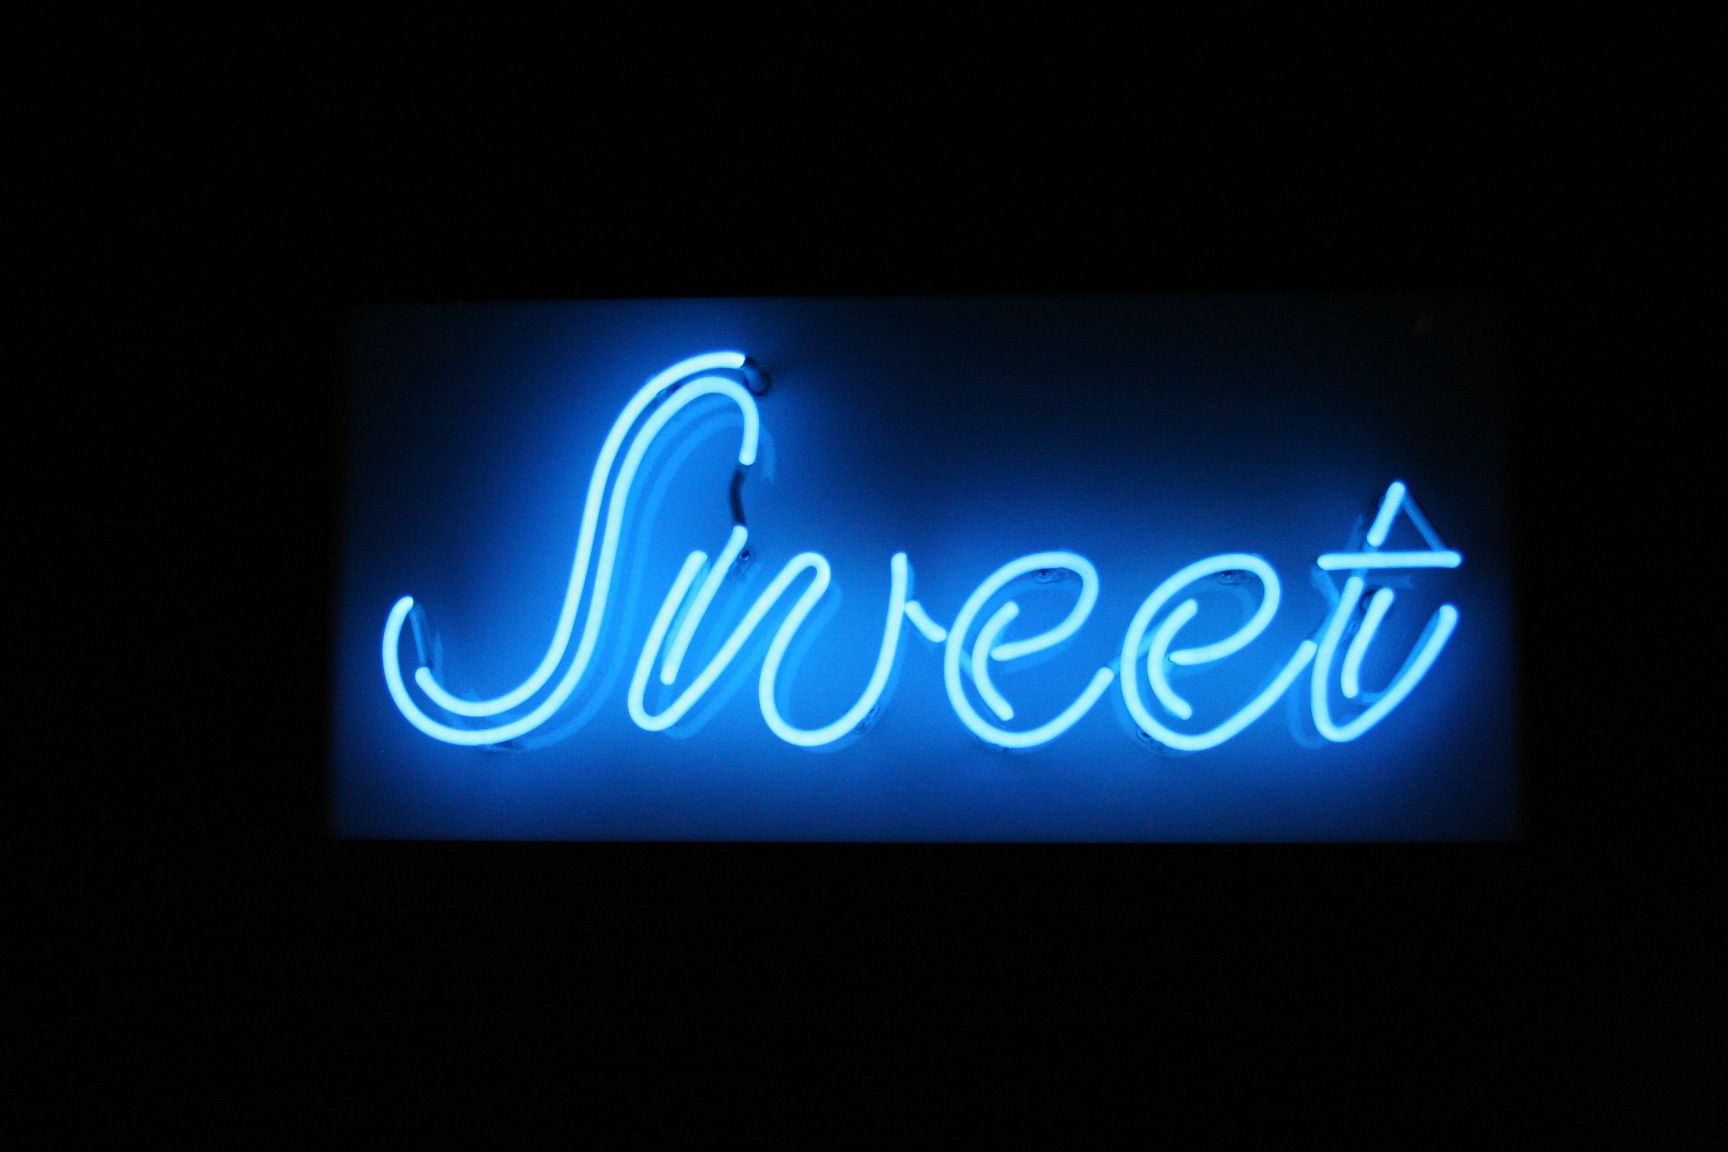 39 sweet 39 neon at the 2012 oc fair neon signs pinterest neon lighting blue and blue aesthetic. Black Bedroom Furniture Sets. Home Design Ideas